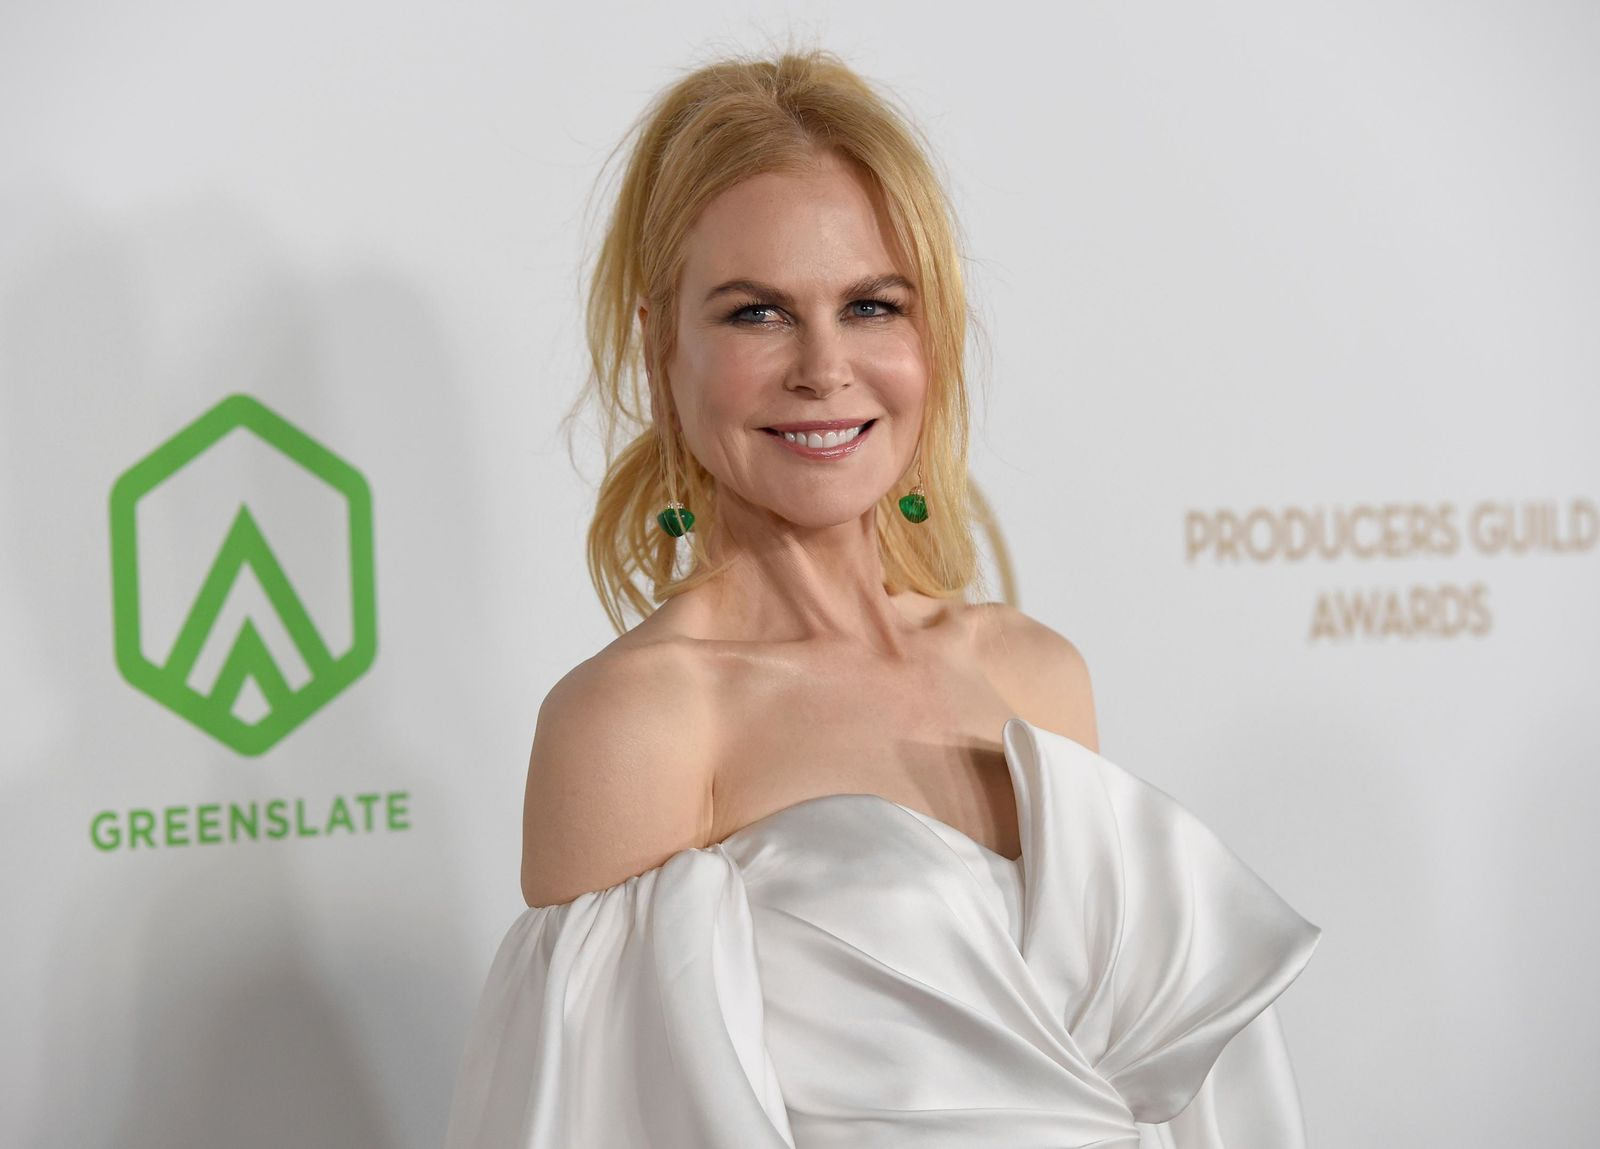 Nicole Kidman arrives at the 2020 Producers Guild Awards at the Hollywood Palladium on Saturday, Jan. 18, 2020, in Los Angeles, Calif. (AP Photo/Chris Pizzello)